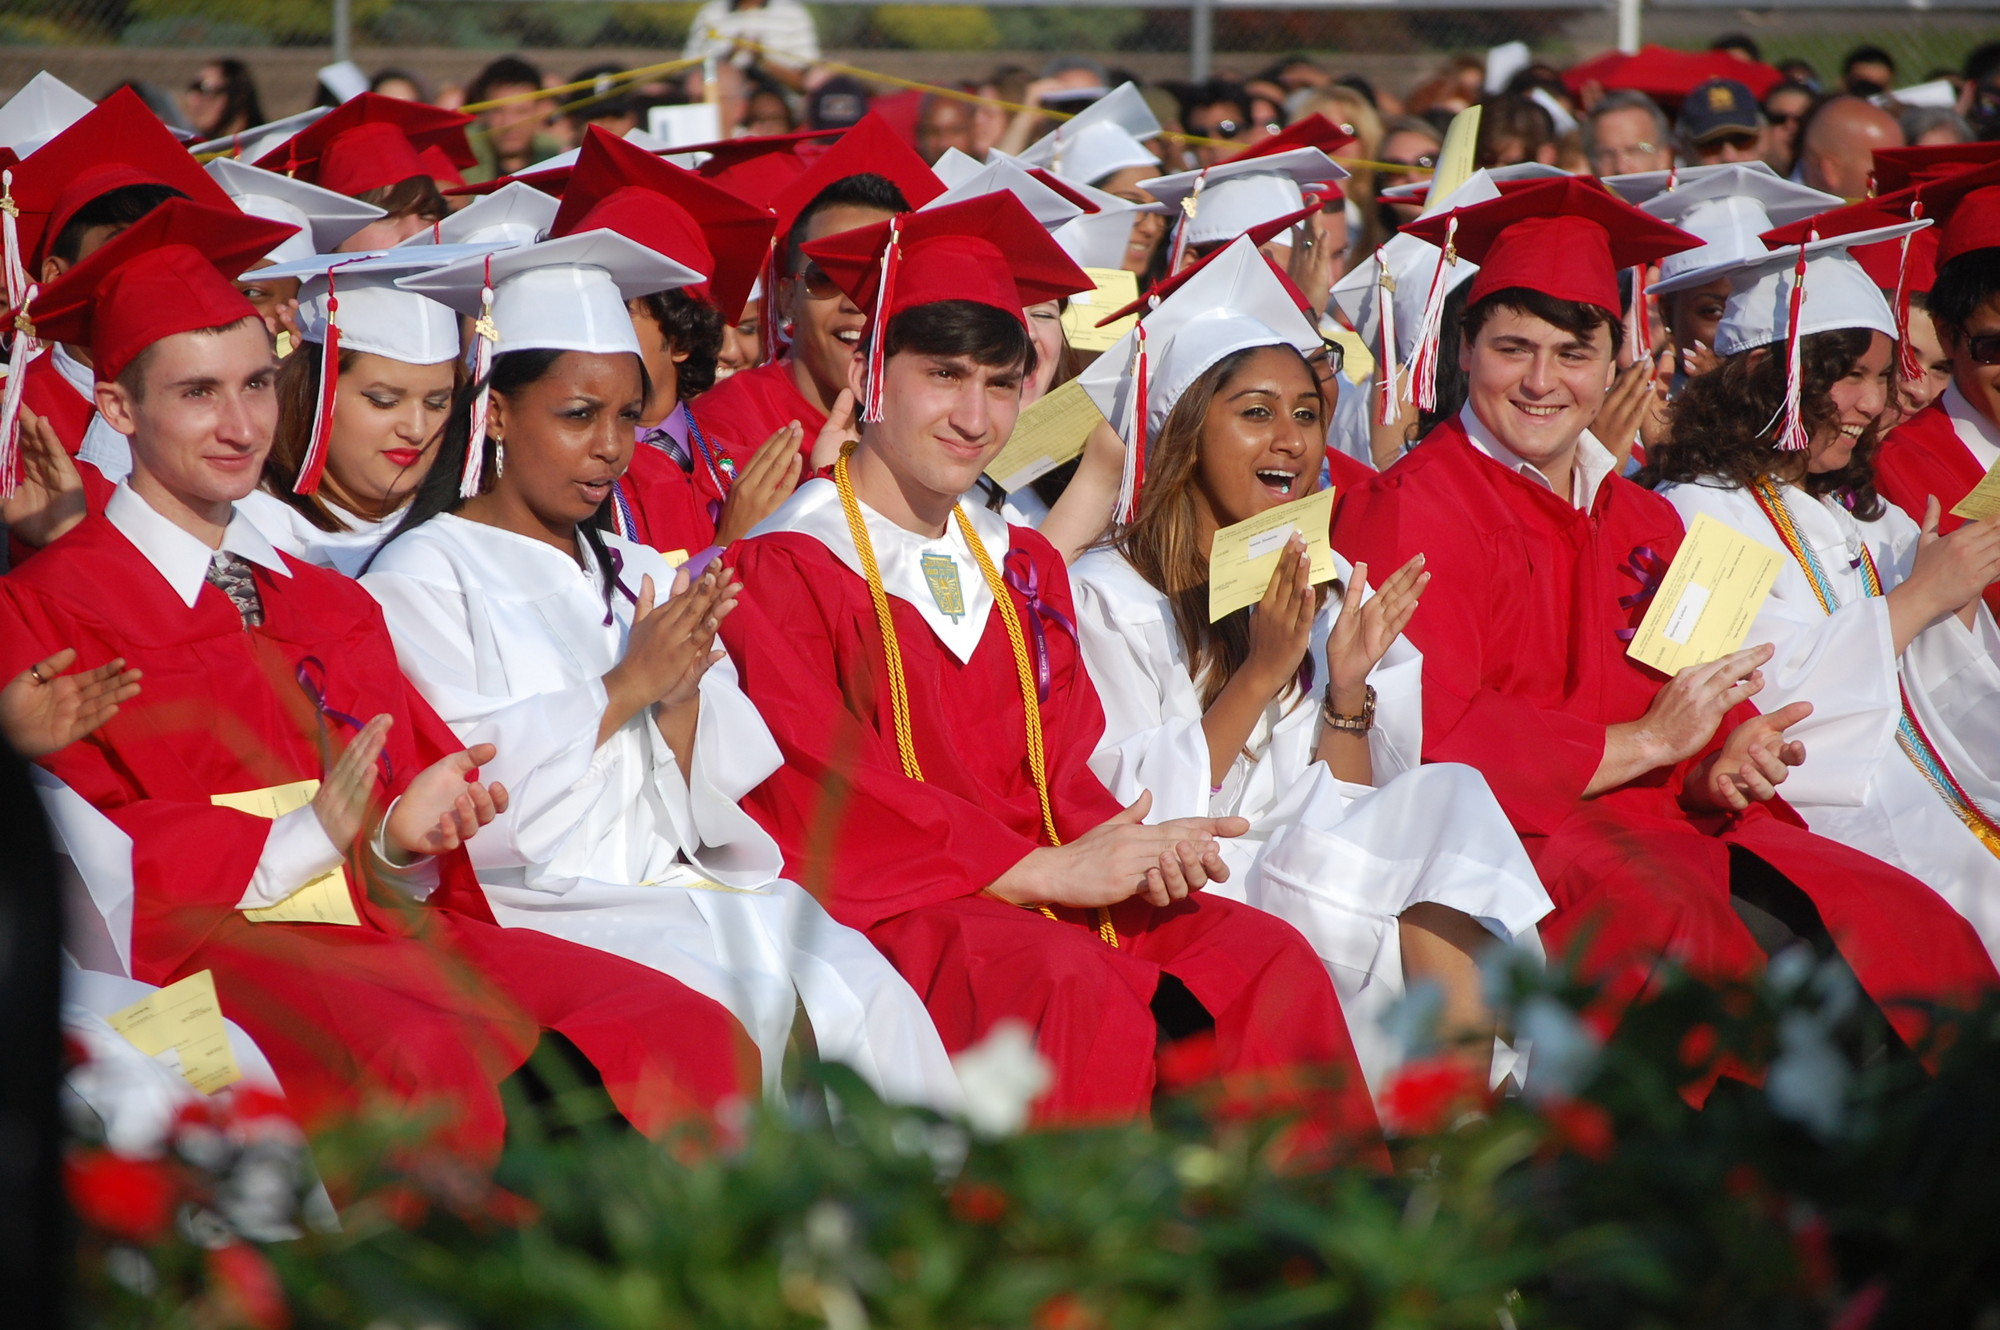 South High School graduates enjoyed sunny skies for their ceremony.